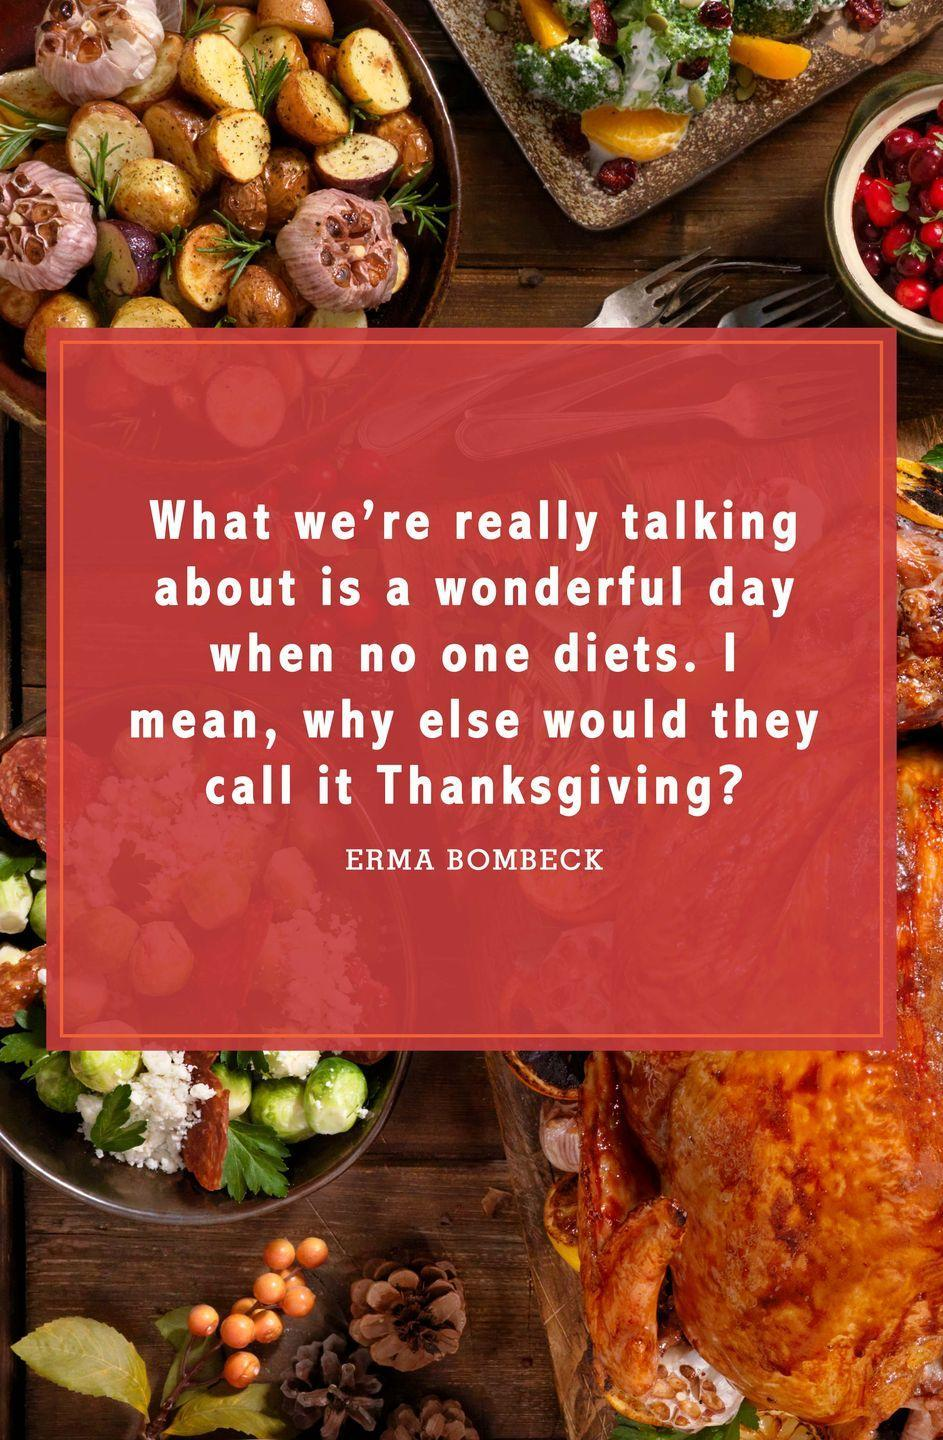 "<p>""What we're really talking about is a wonderful day when no one diets. I mean, why else would they call it Thanksgiving?""</p>"